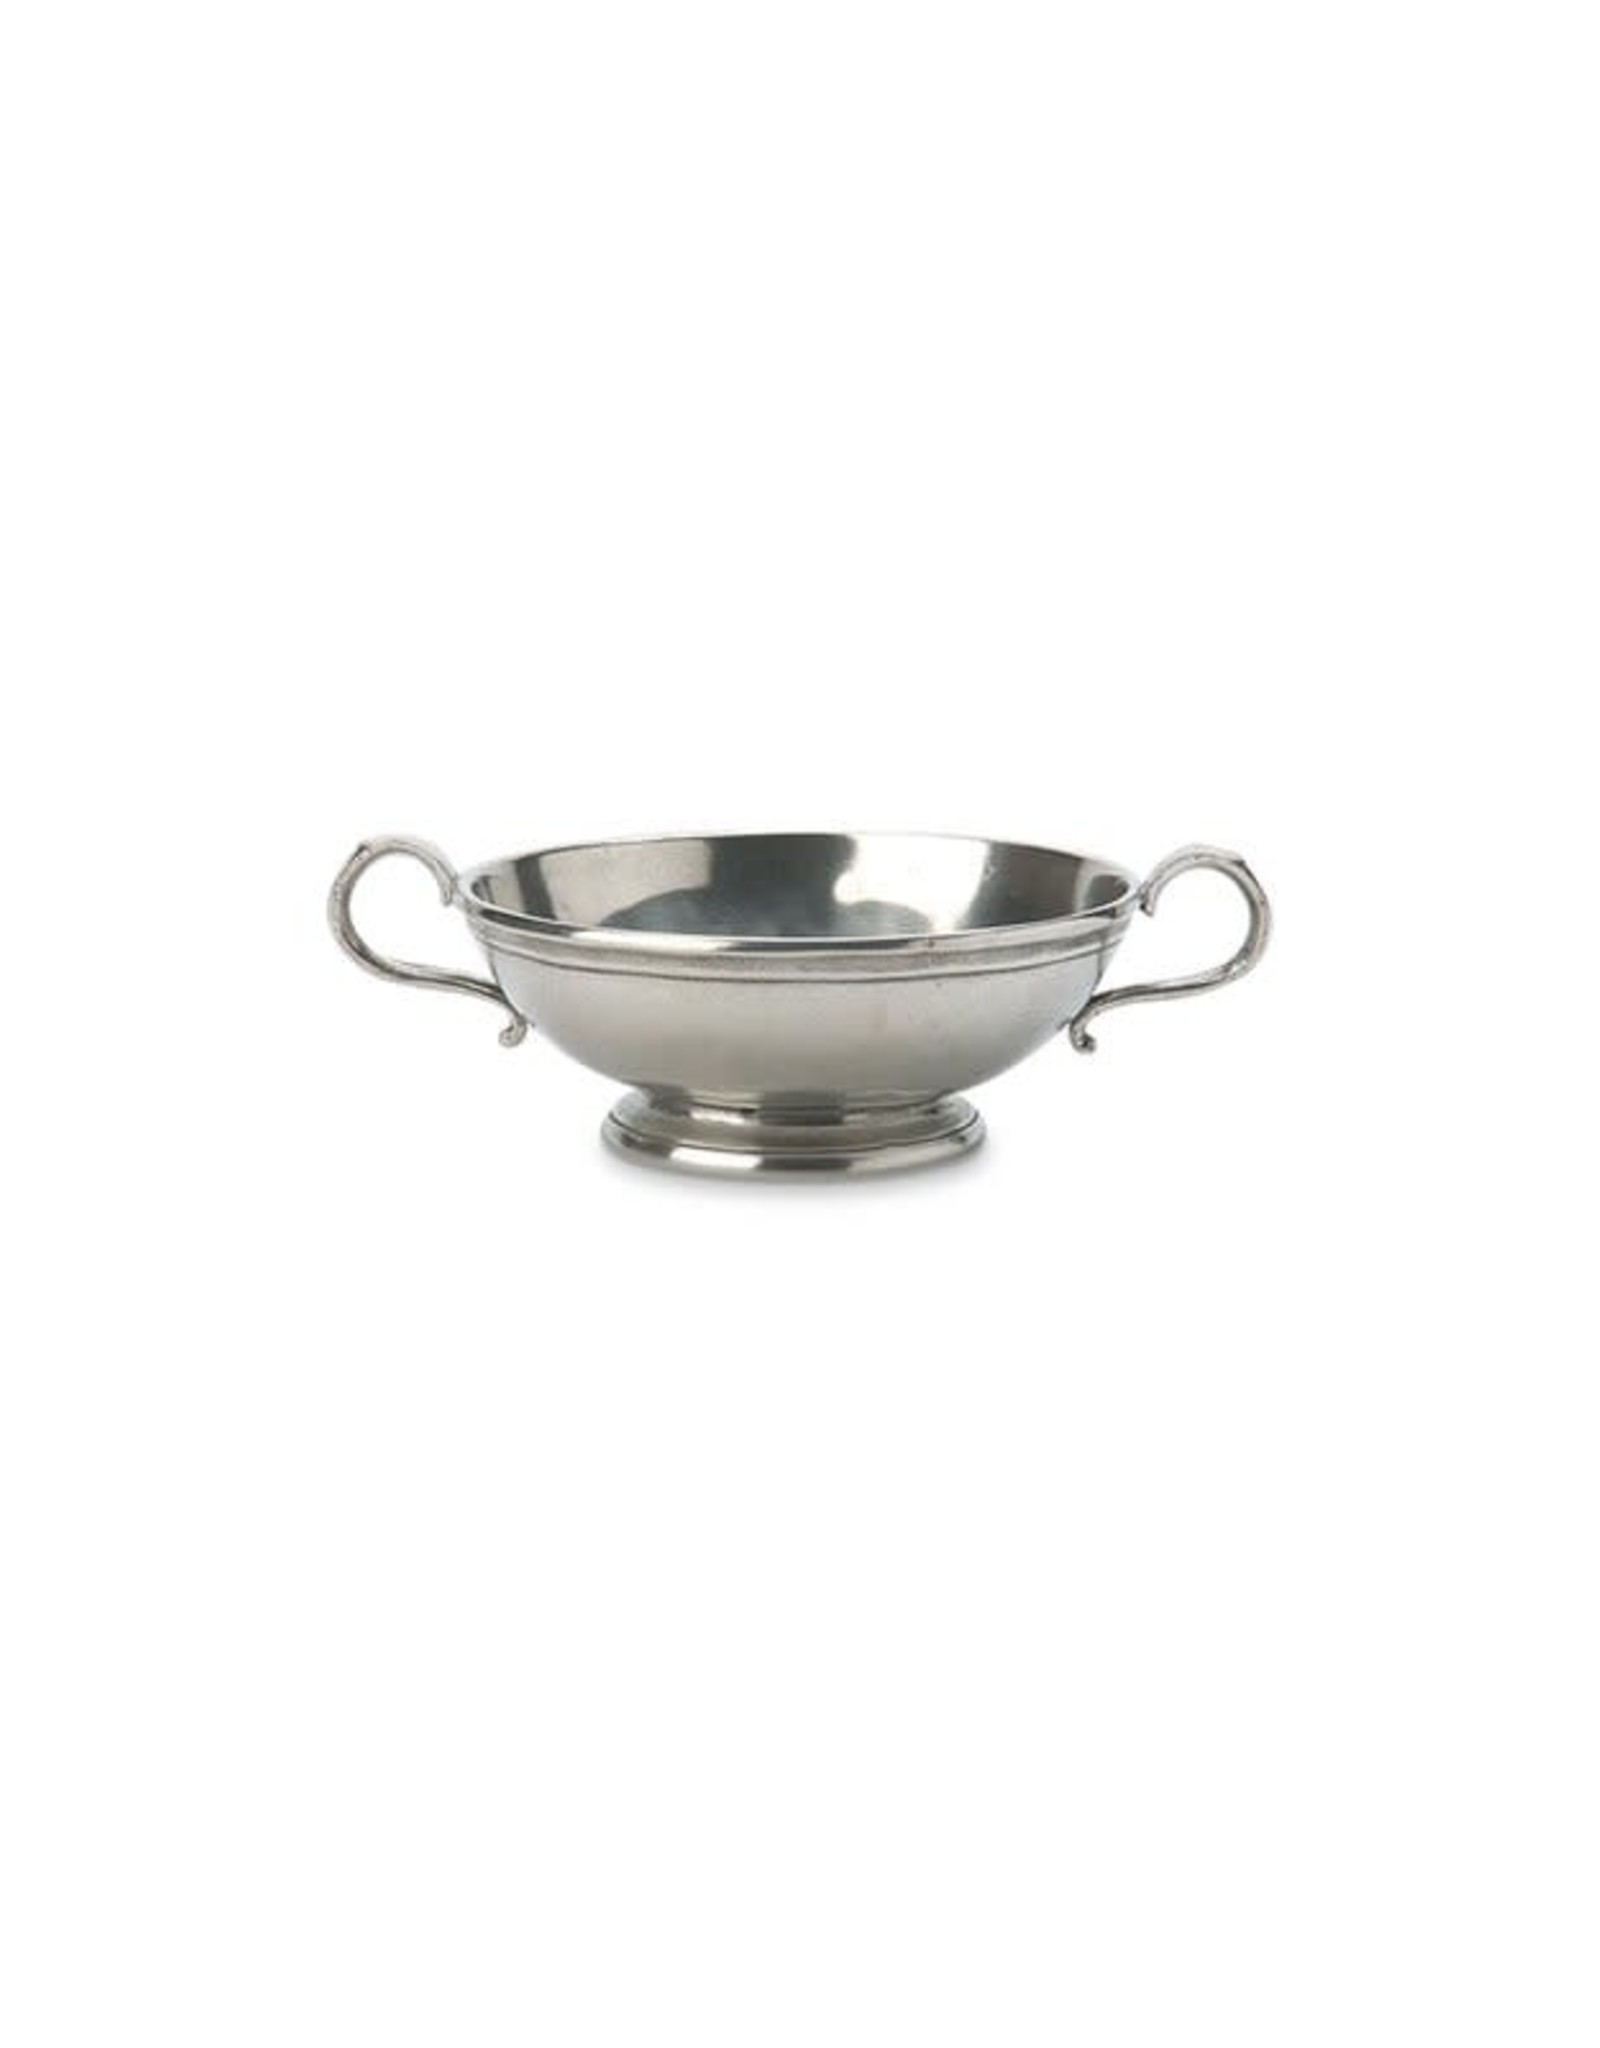 Home Low Footed Bowl with Handles, Small